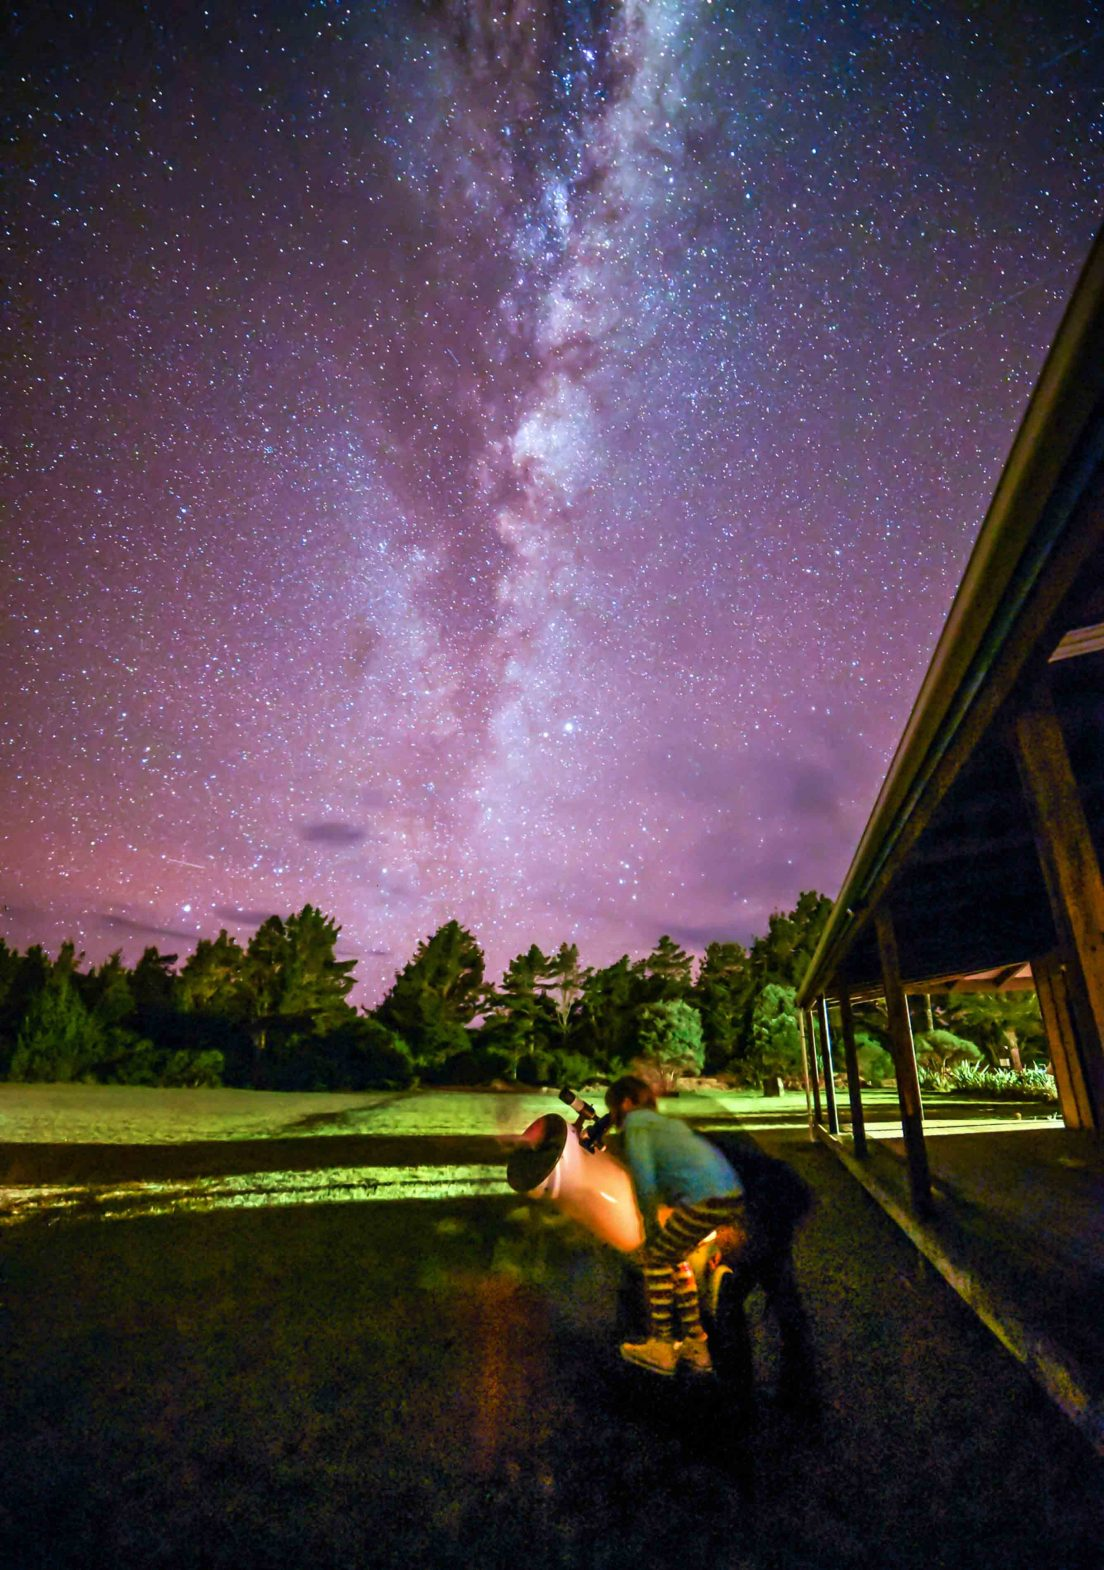 Stargazers view Great Barrier Island's night sky through a large telescope.